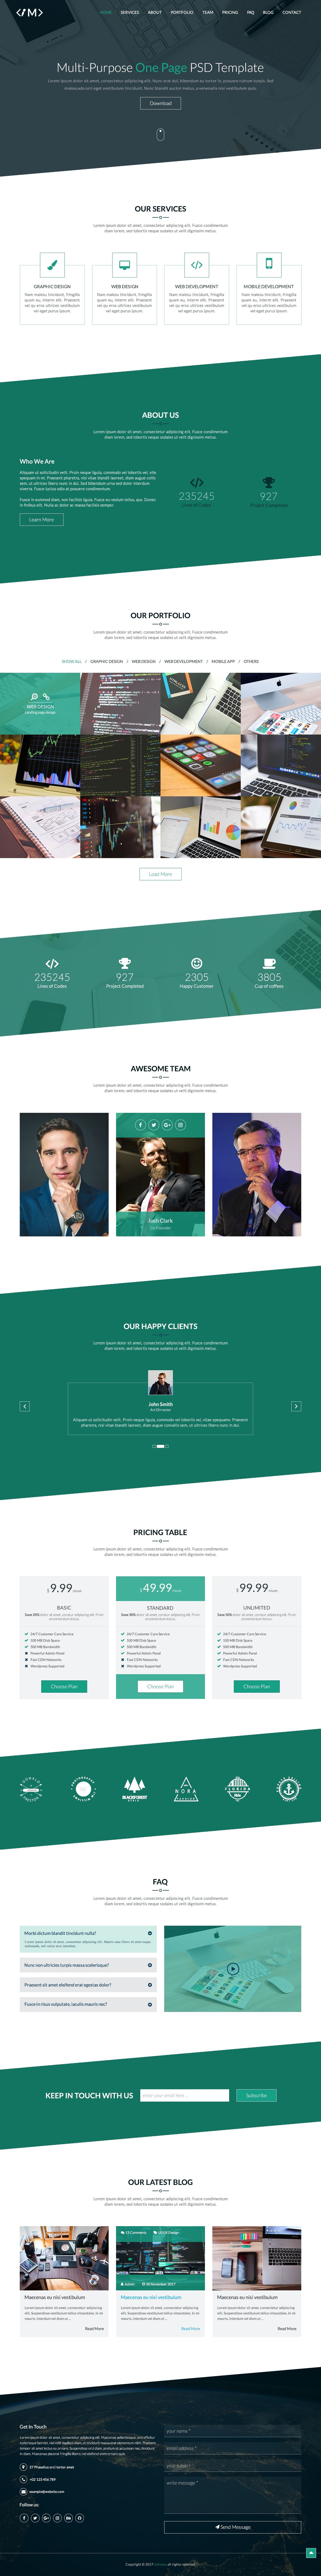 MTheme - Multi-Purpose One Page PSD Template Screenshot 8